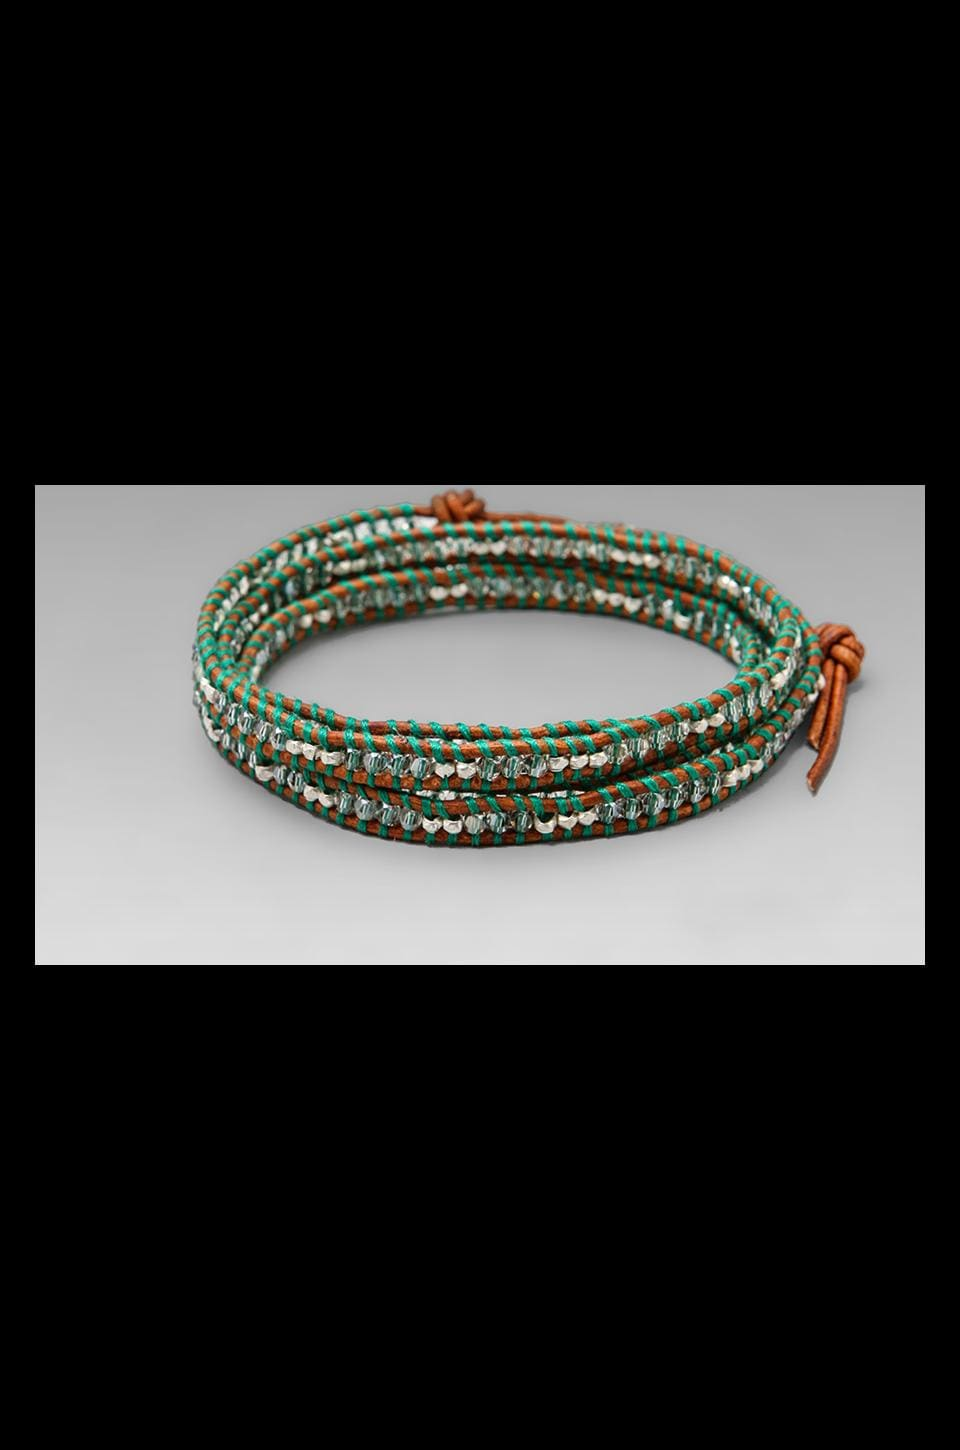 CHAN LUU Threaded Wrap Bracelet in Silver Shade/Natural Brown